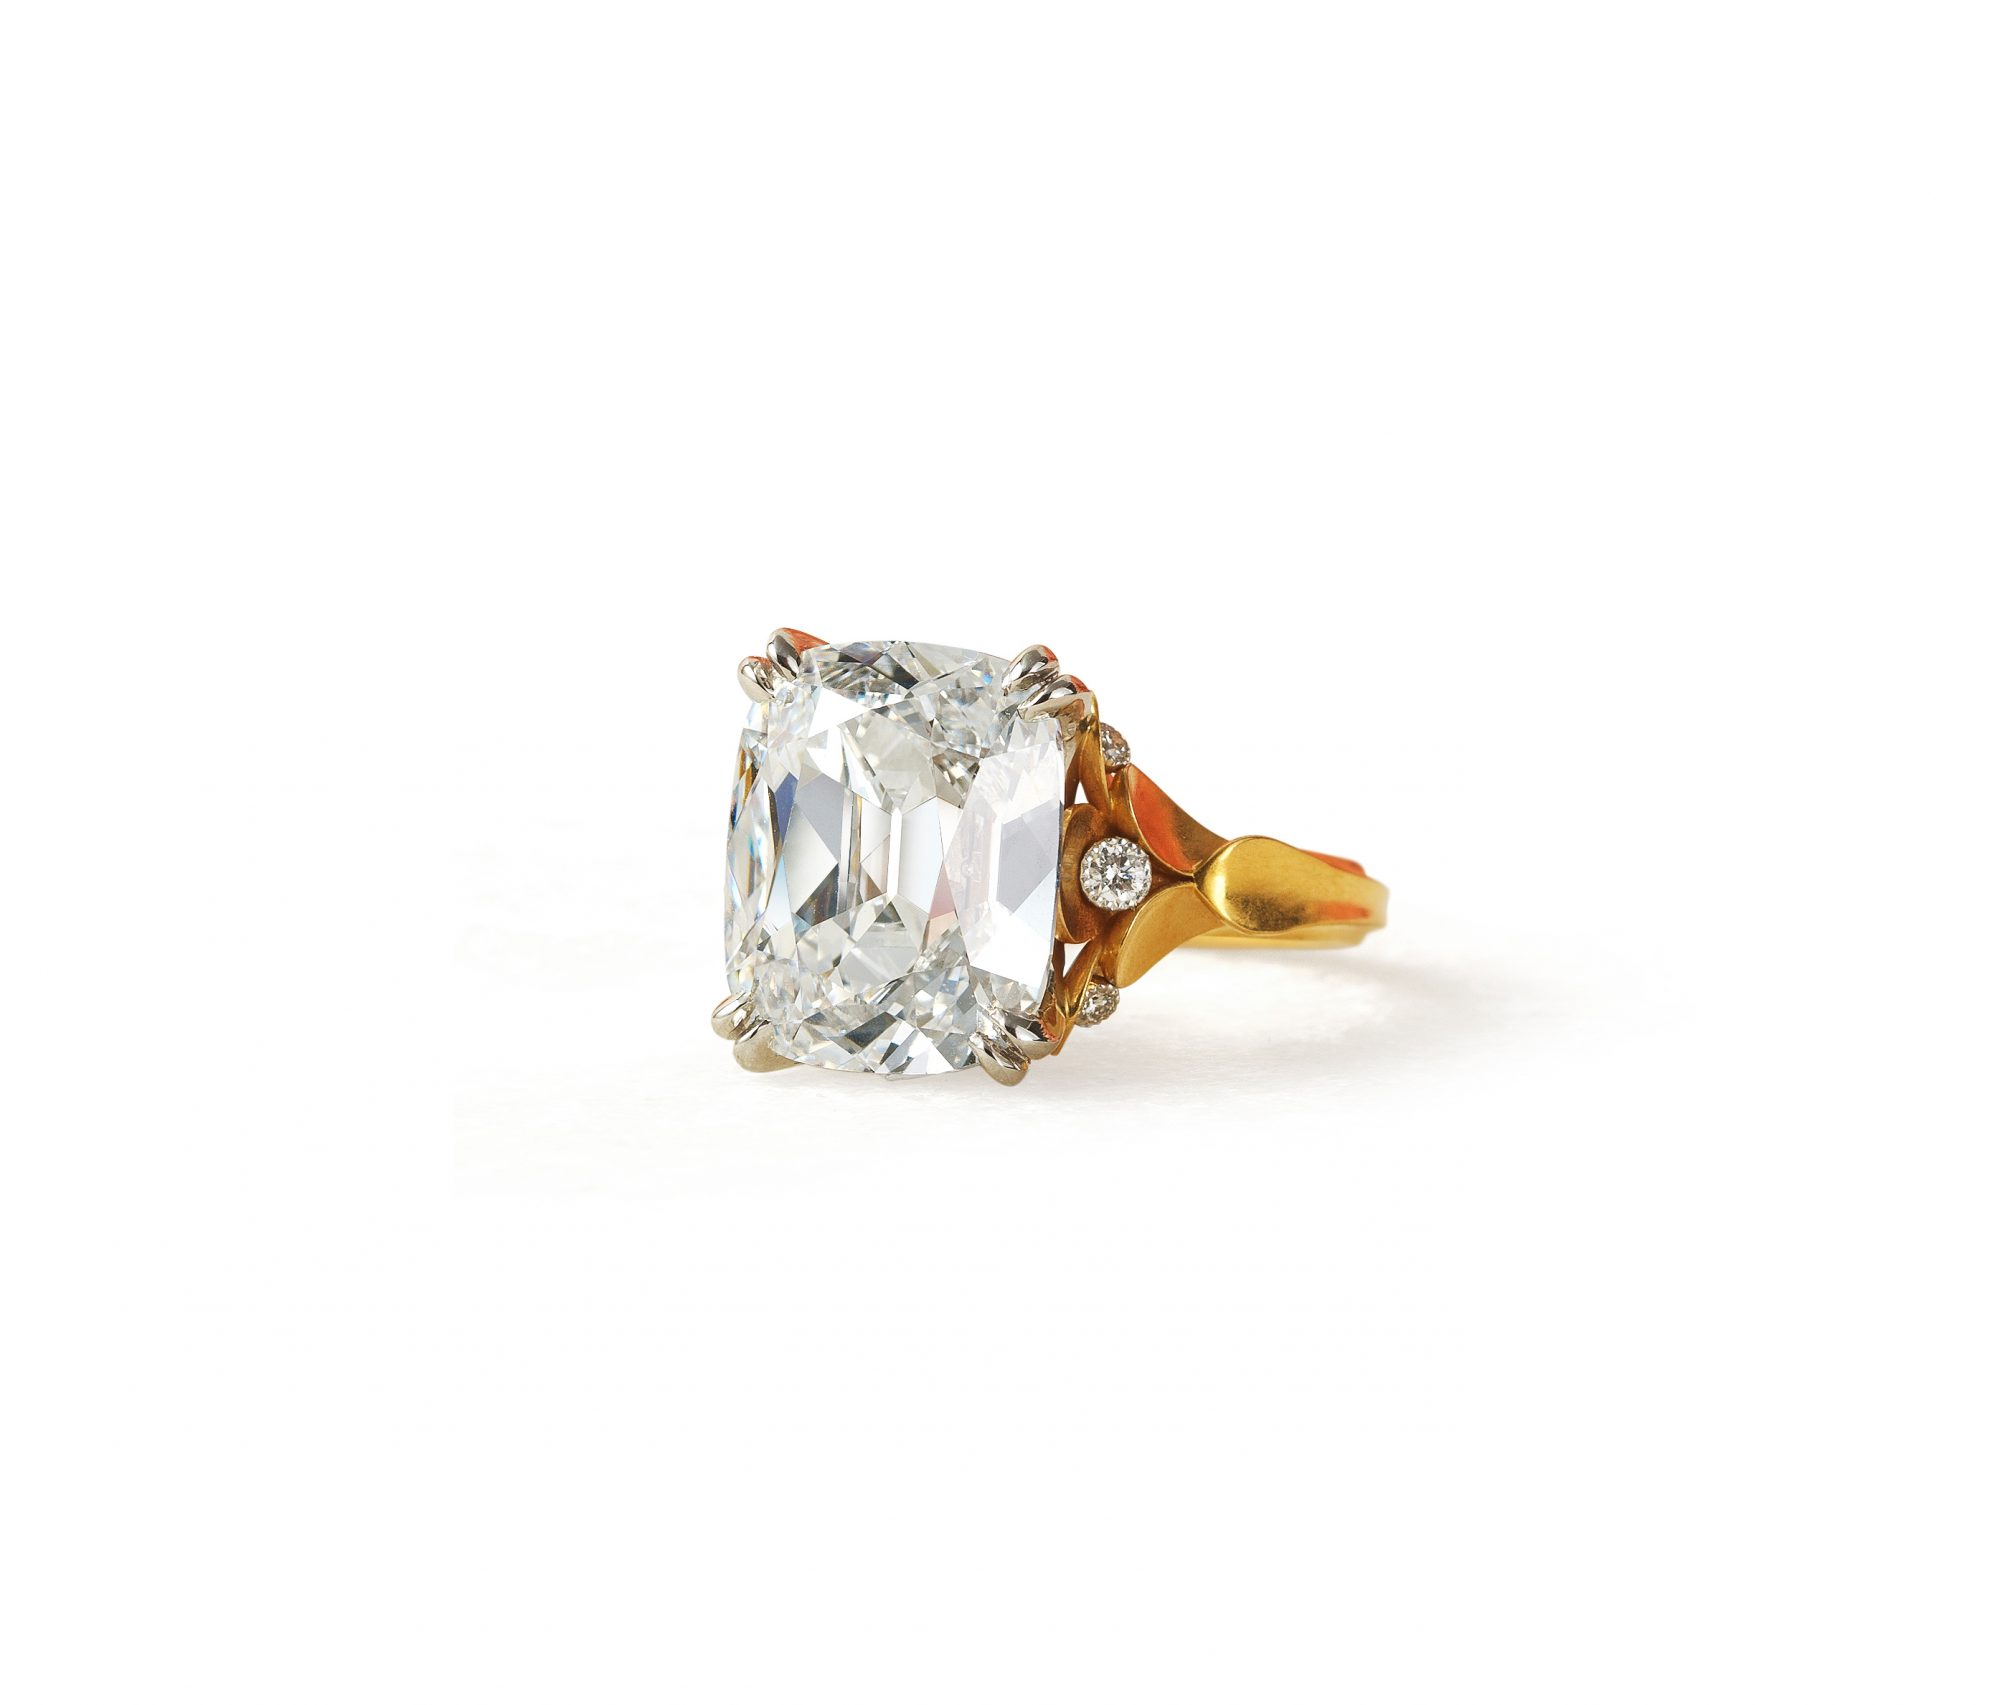 mcteigue mclelland cushion cut antique engagement ring on gold band